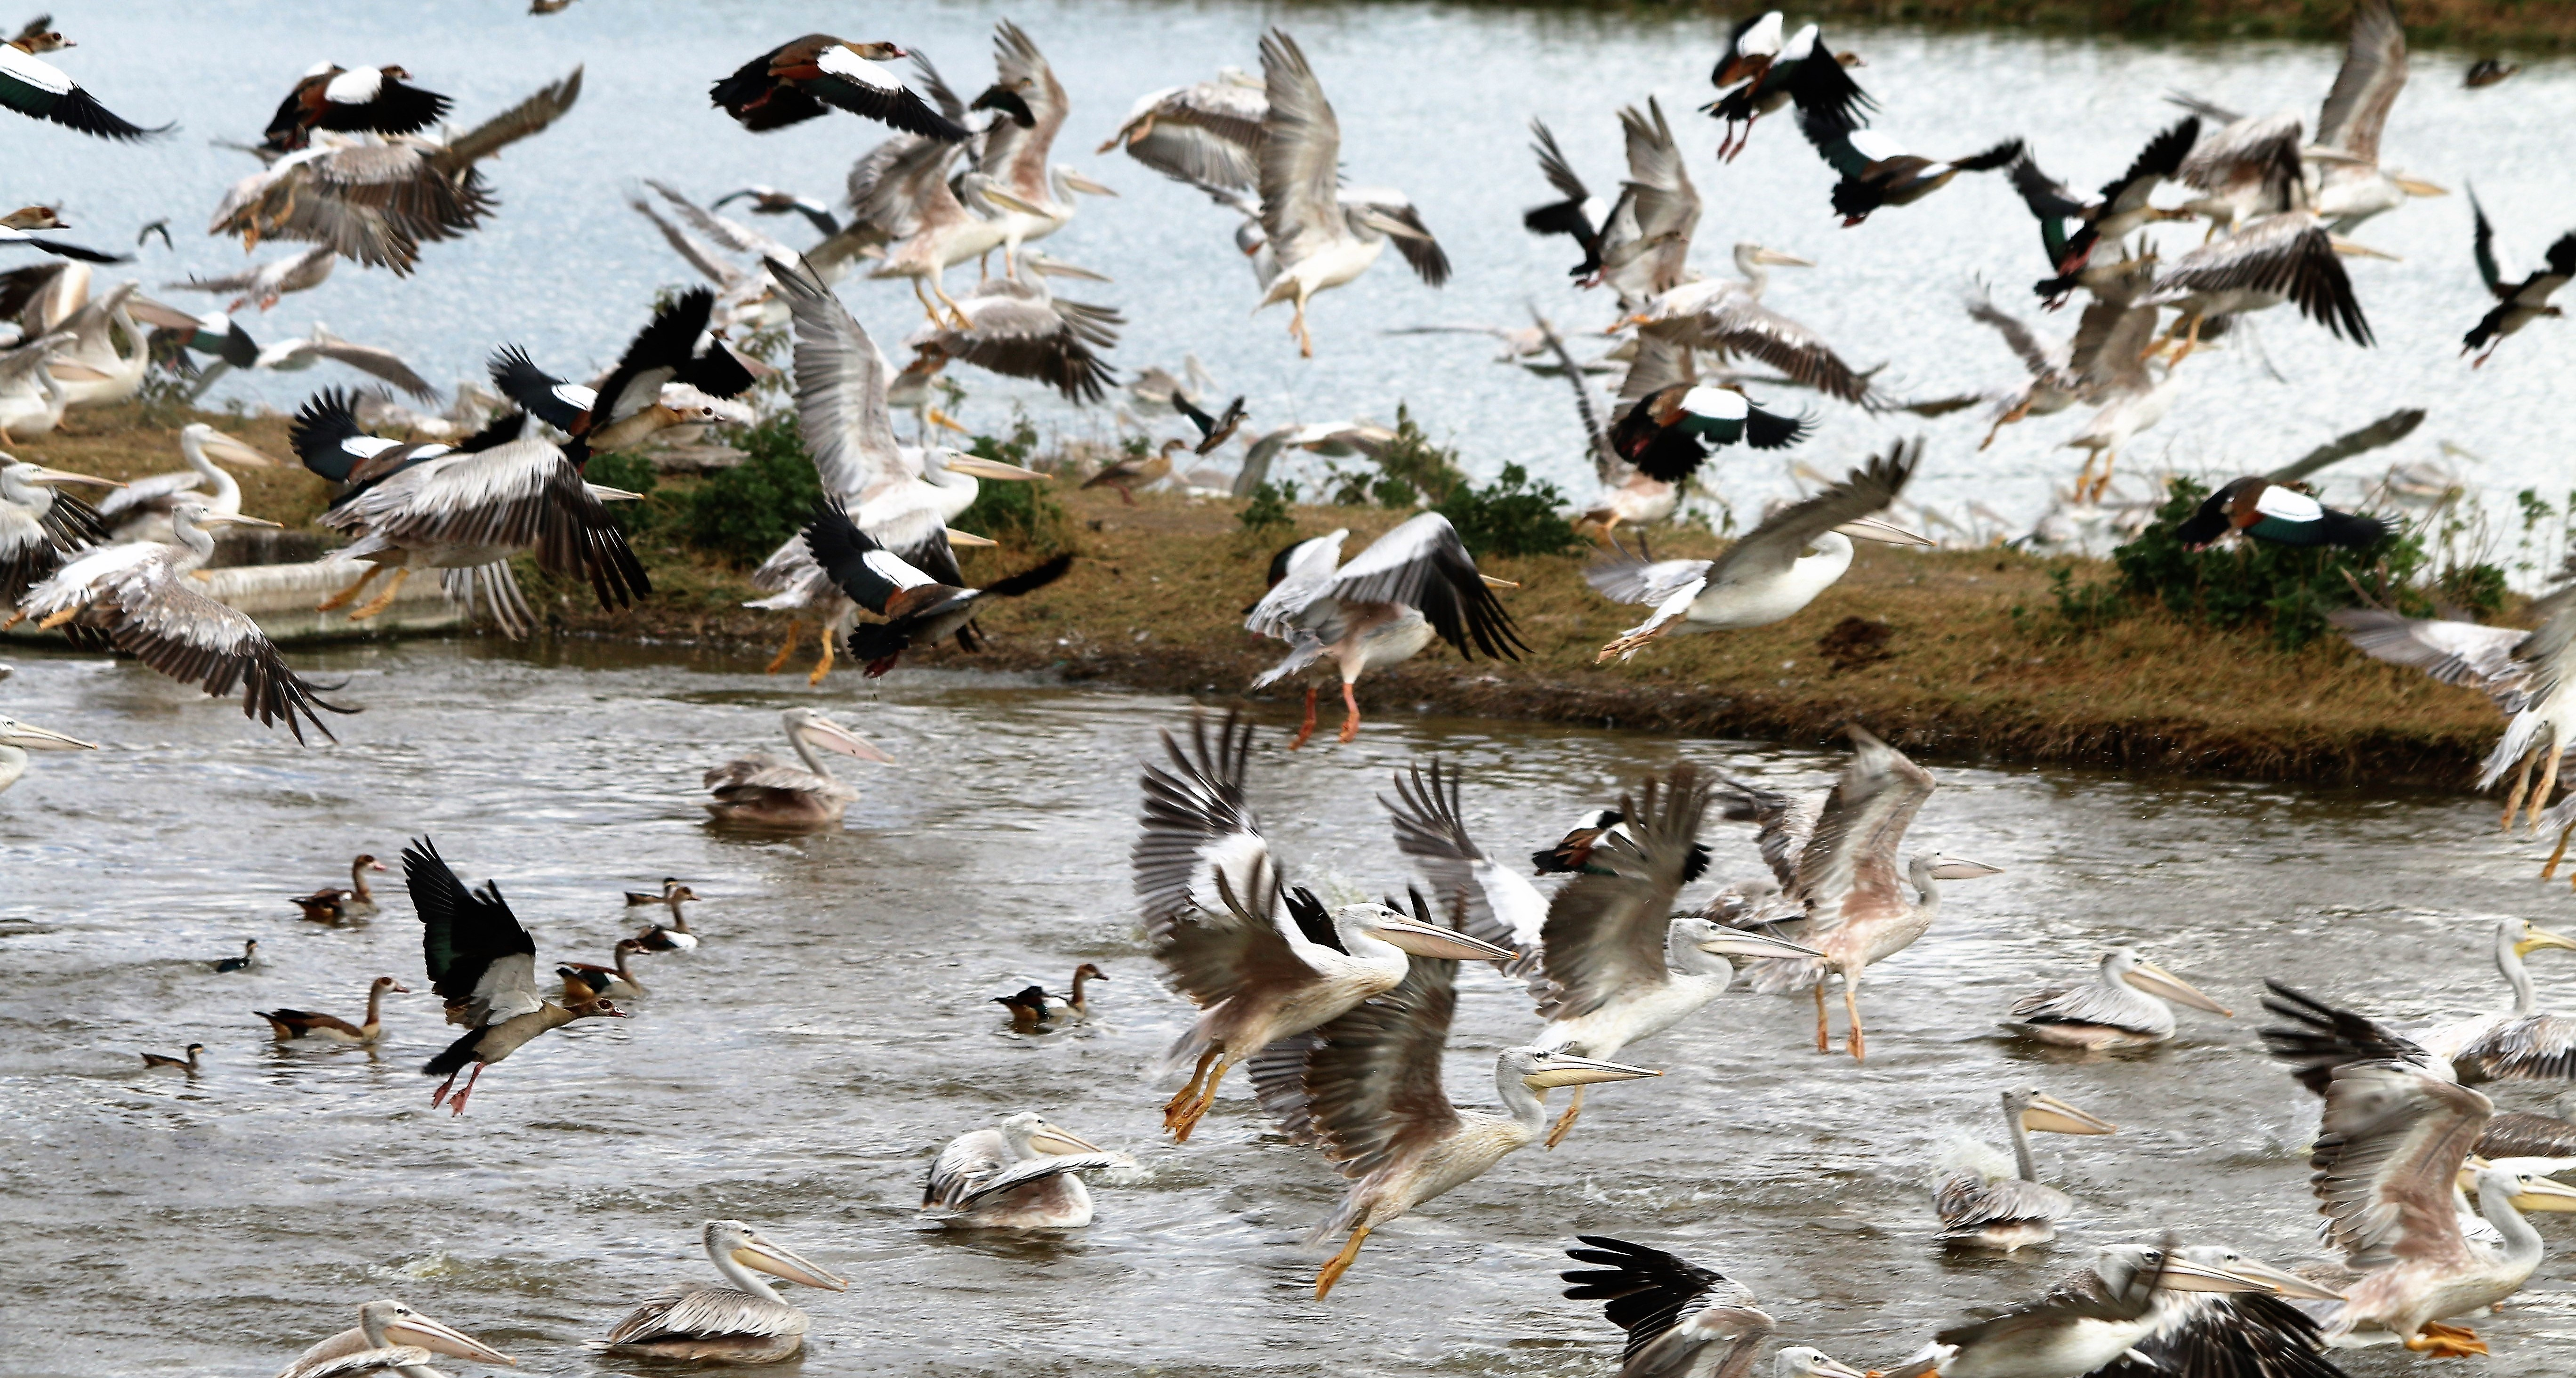 13. Birds taking flight at Town Sewage W